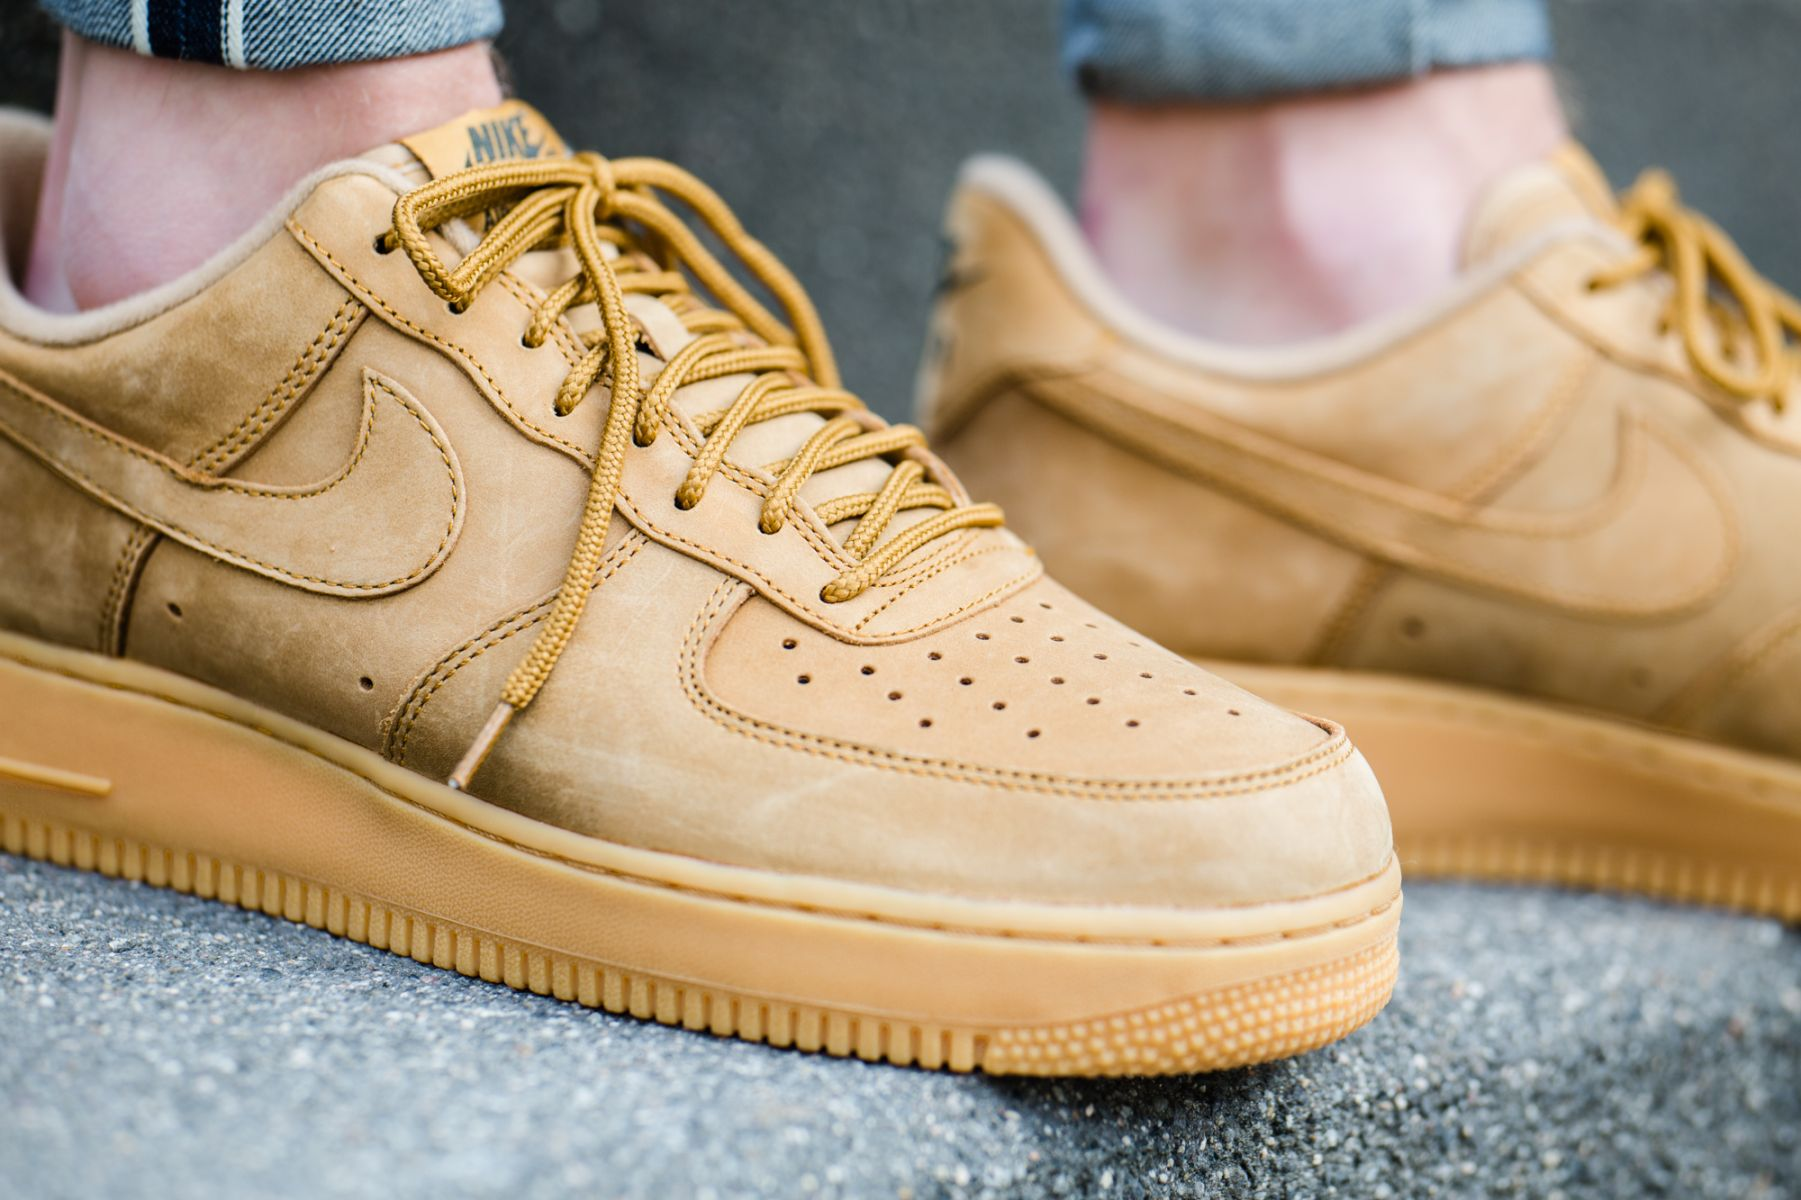 Nike Air Force 1 Low Flax AA4061 200 Release Date